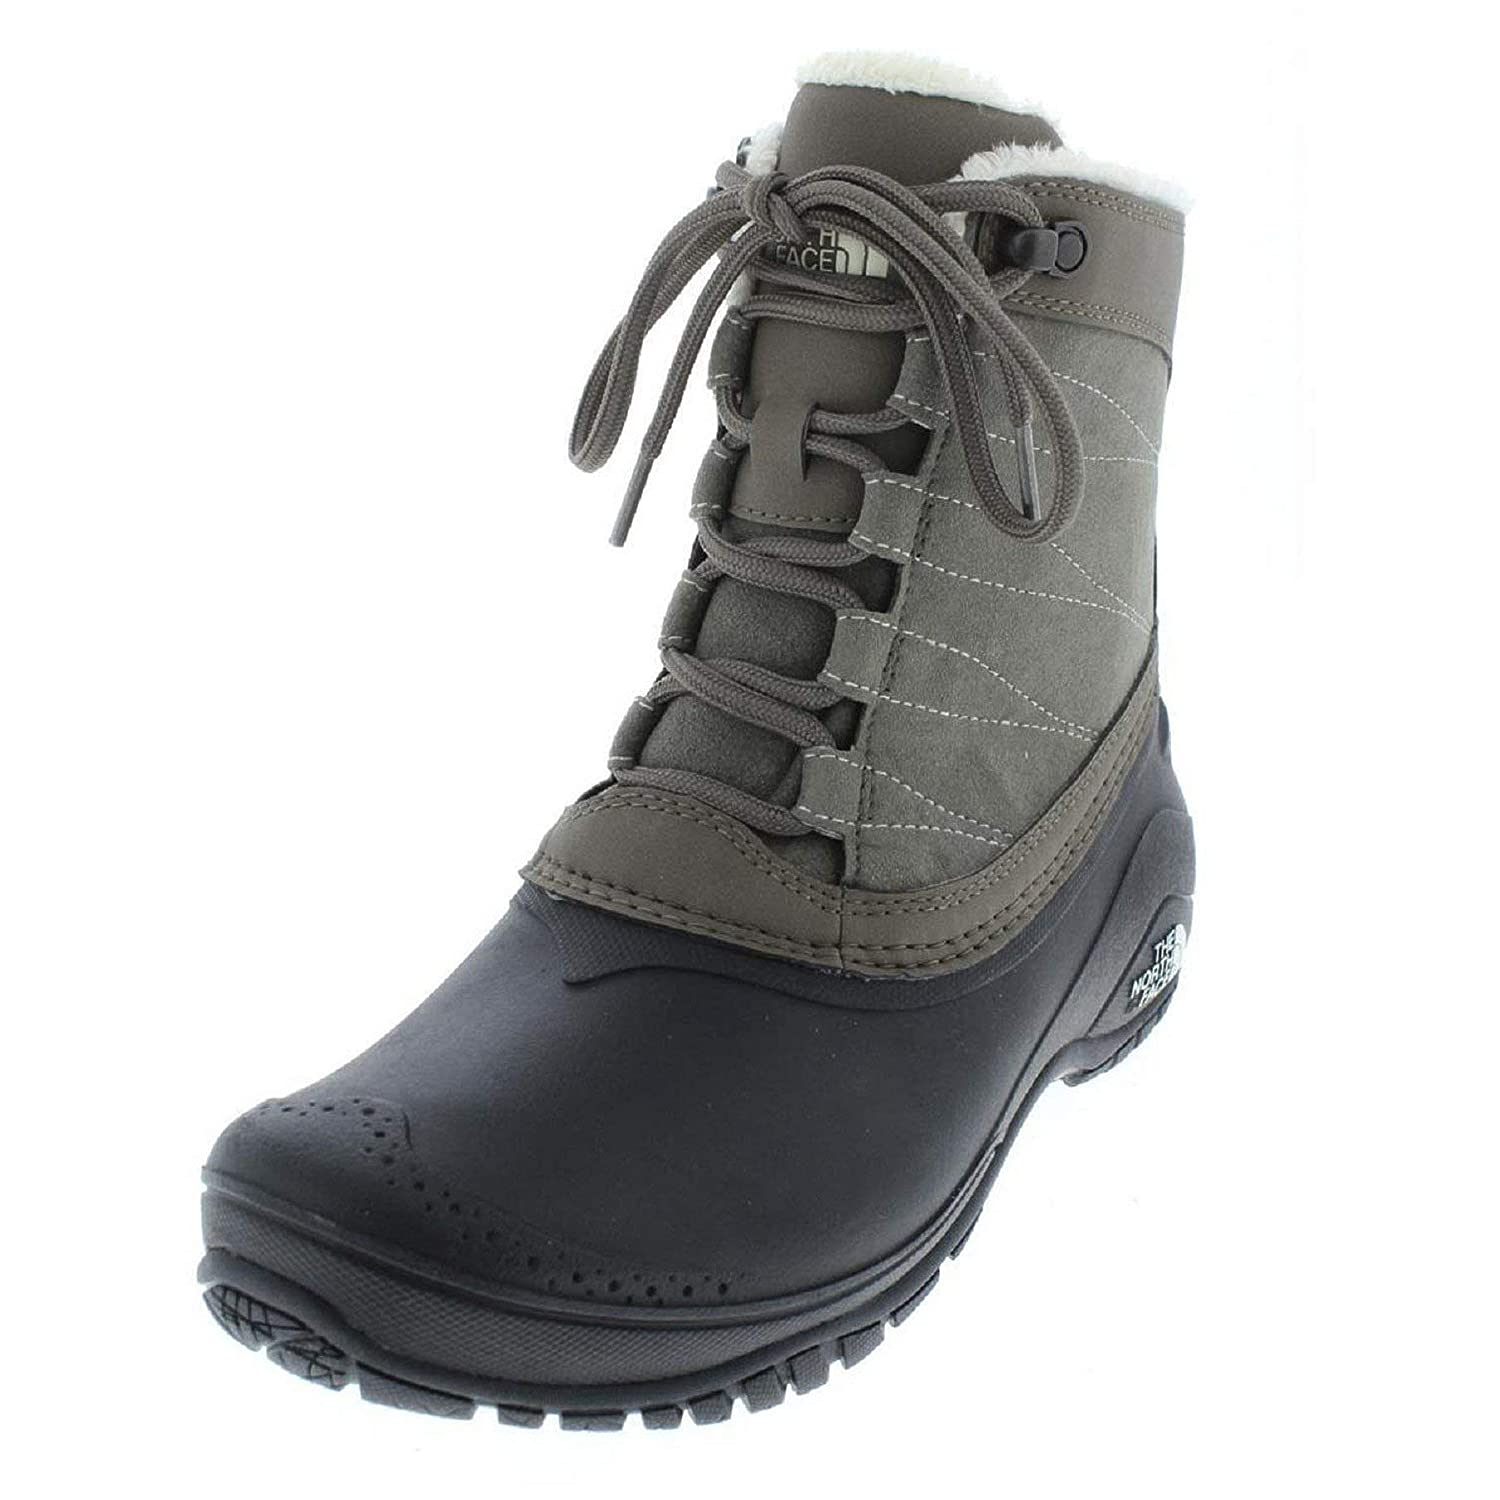 Mnt culture The North Face Womens Stormkat Faux Fur Lined Winter Boots